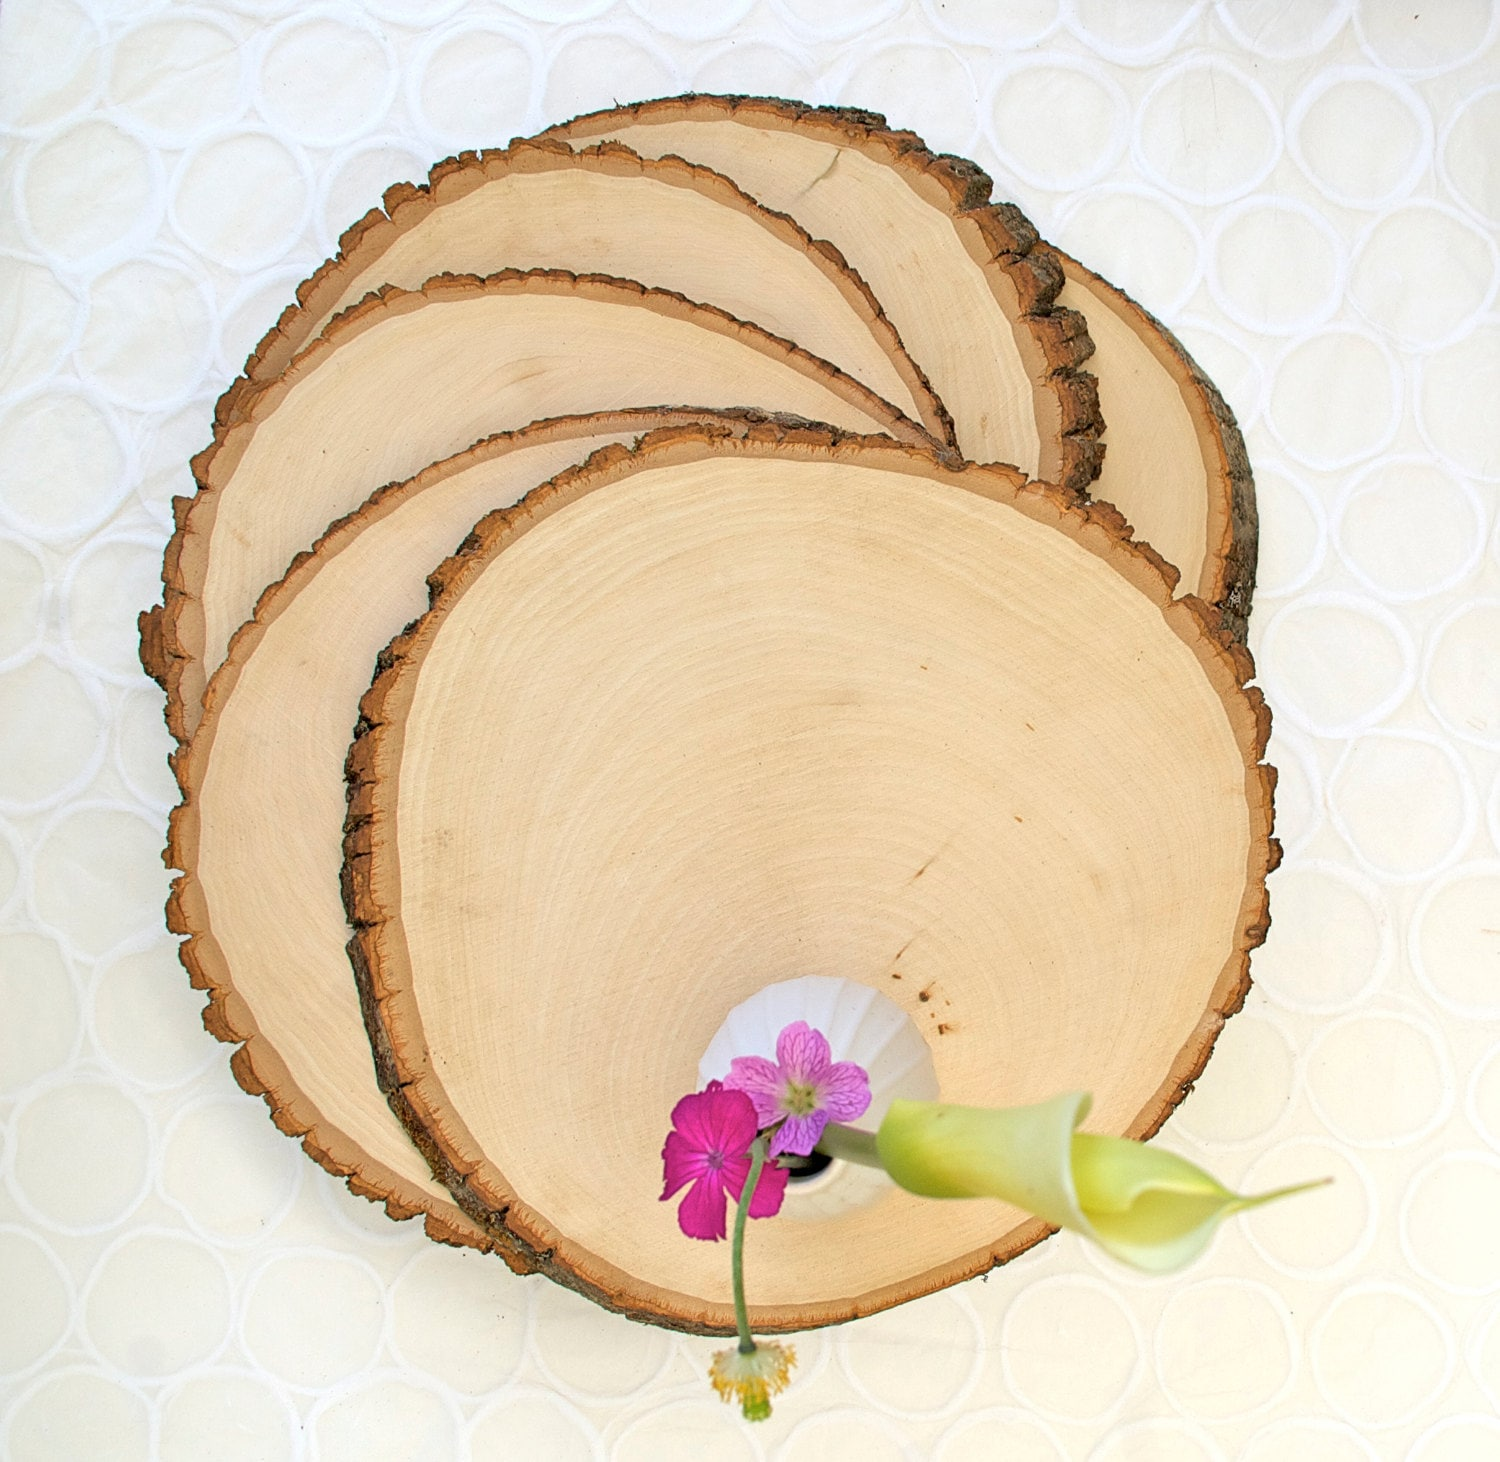 Set of large rustic wood tree slice centerpieces